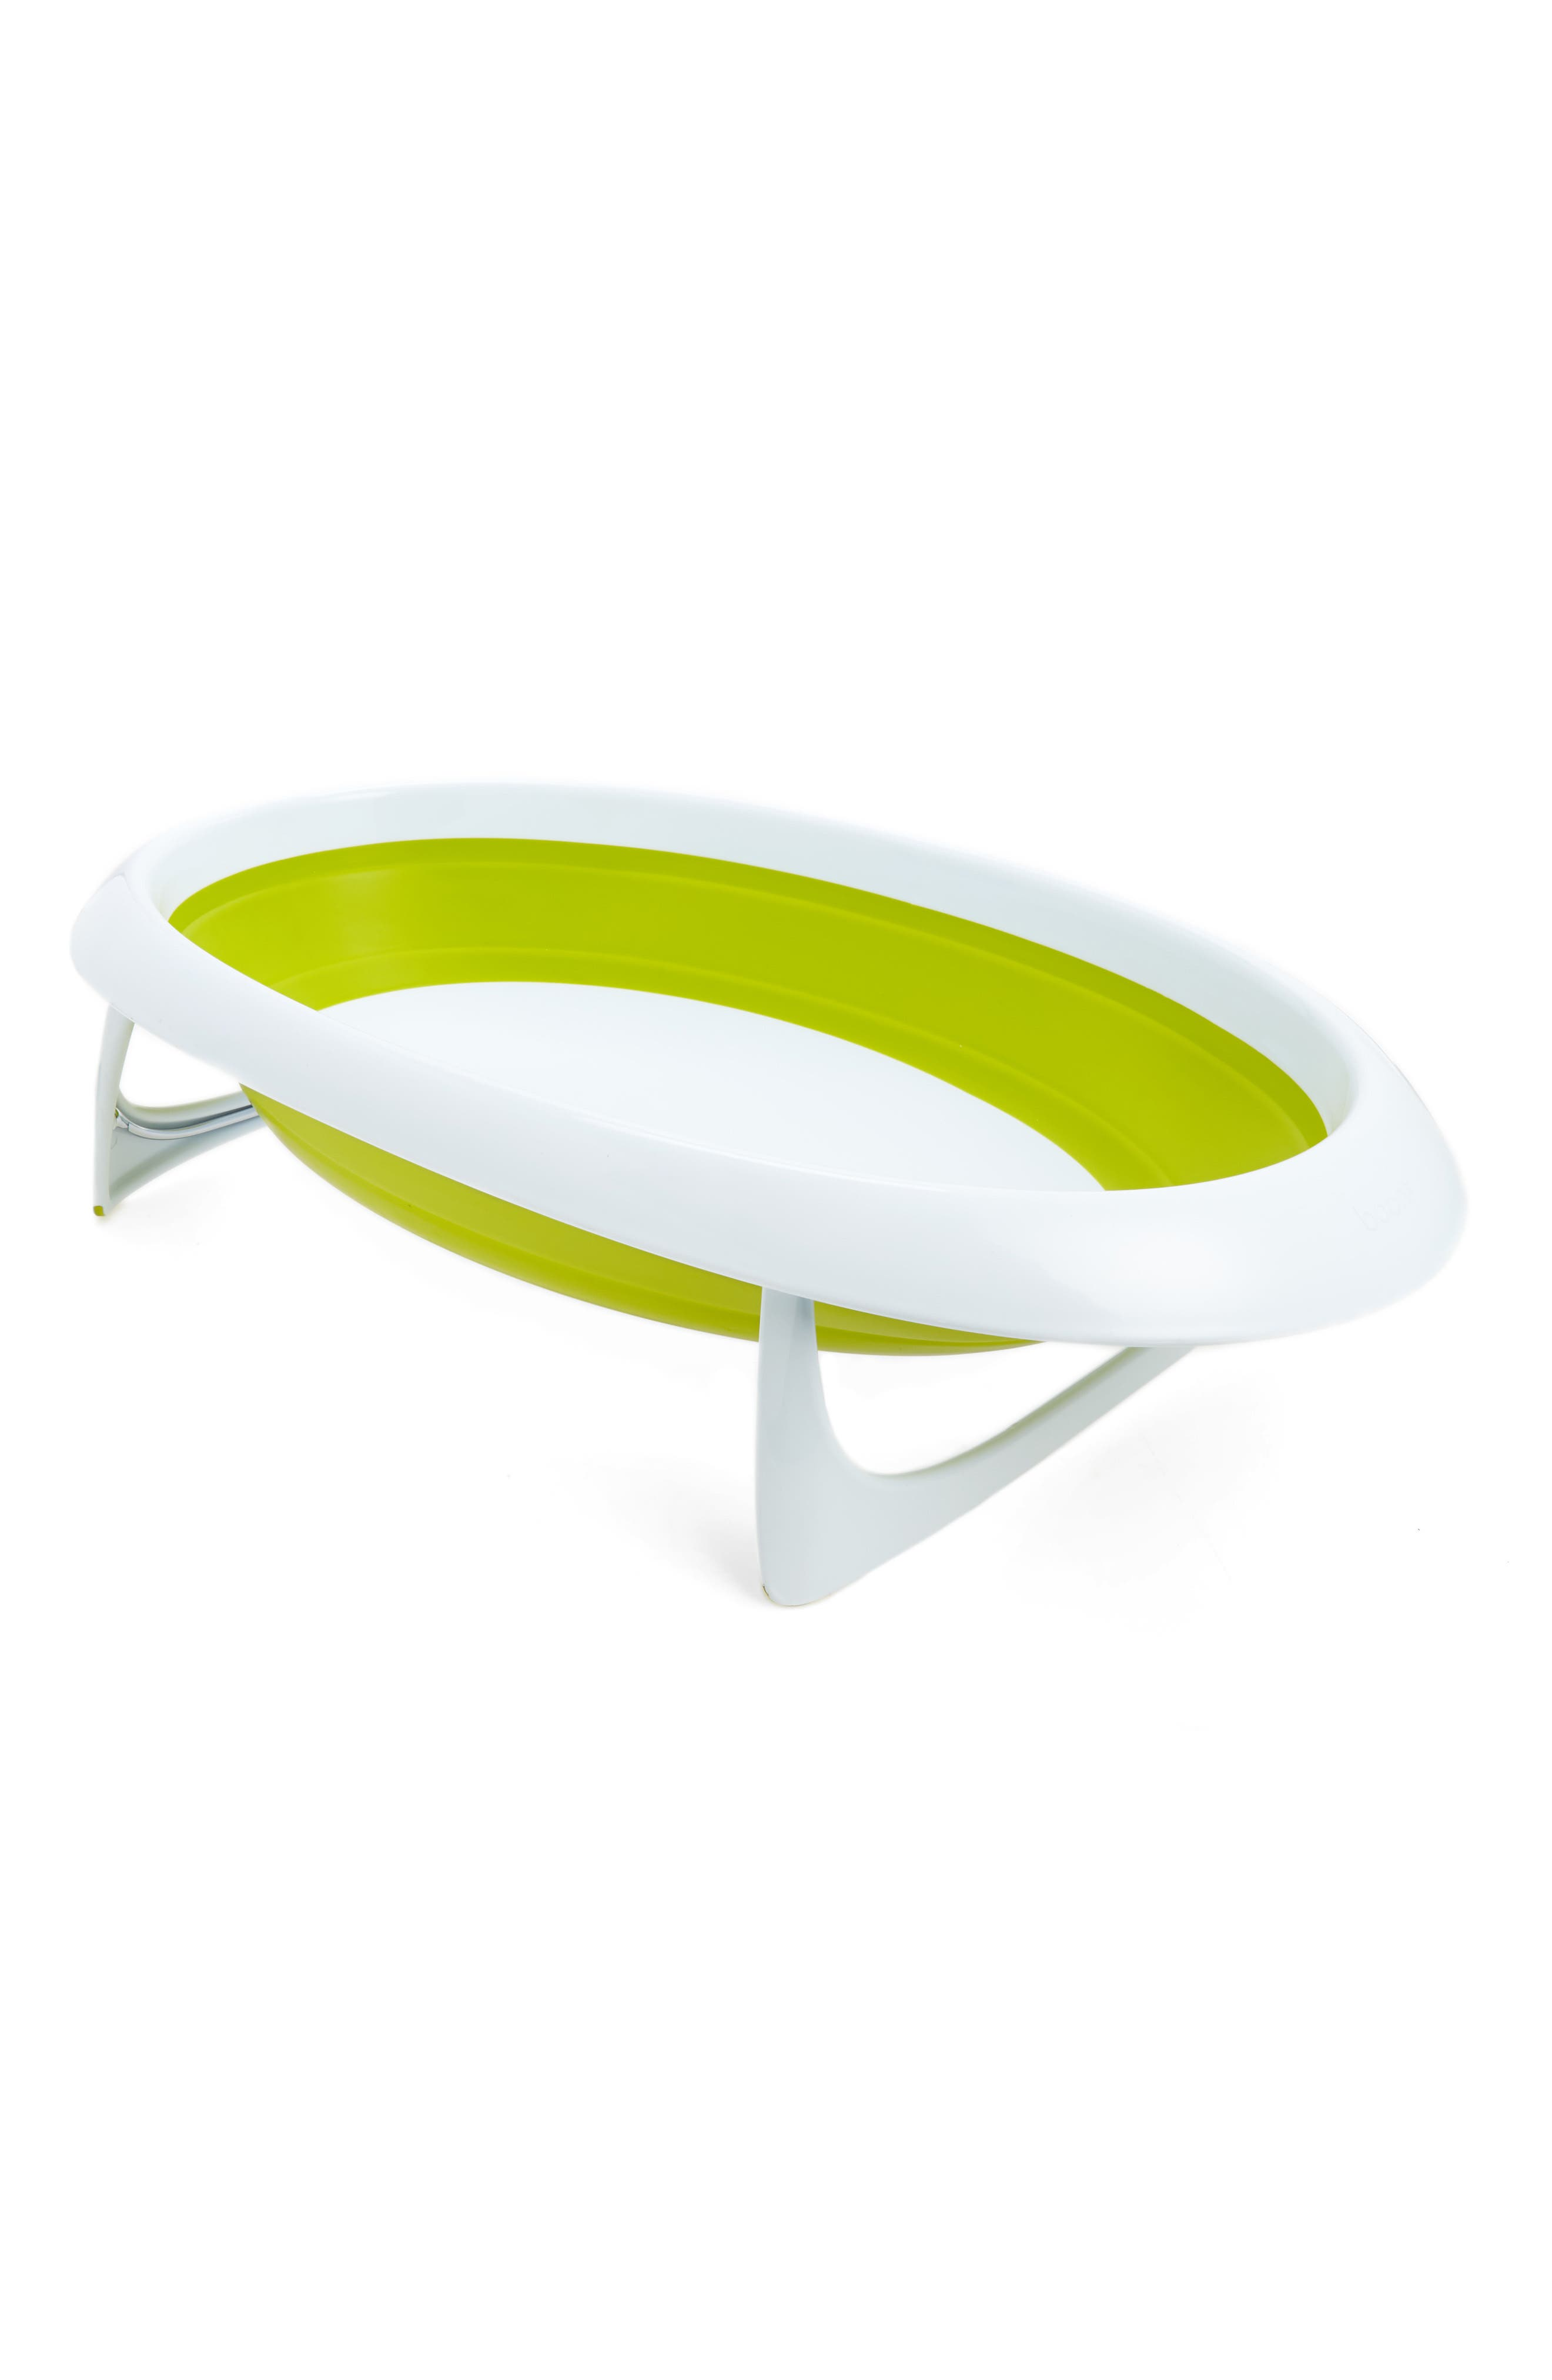 'Naked' Collapsible Bathtub,                         Main,                         color, GREEN AND WHITE